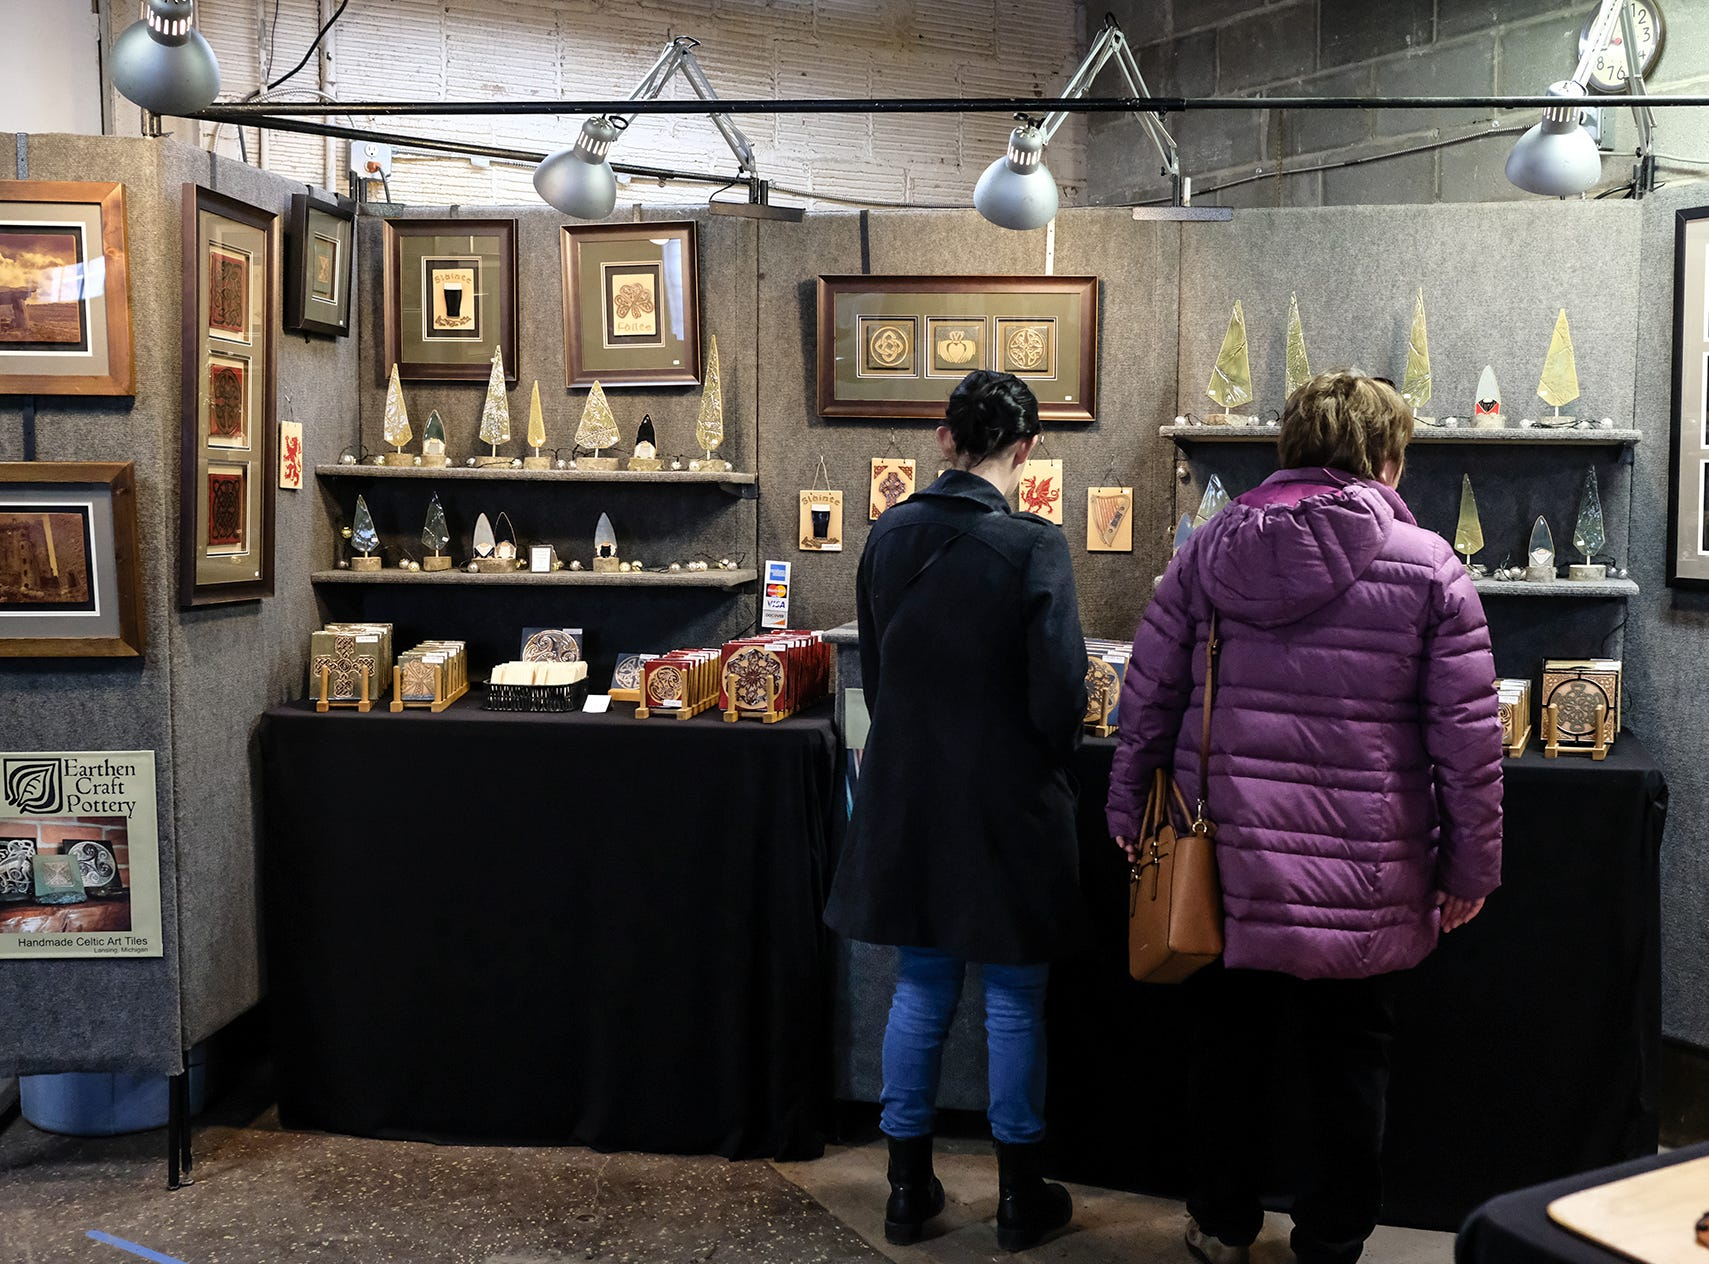 Two women look over the Earthen Craft Pottery display at the Reo Town Marketplace Saturday, Dec. 8, 2018.